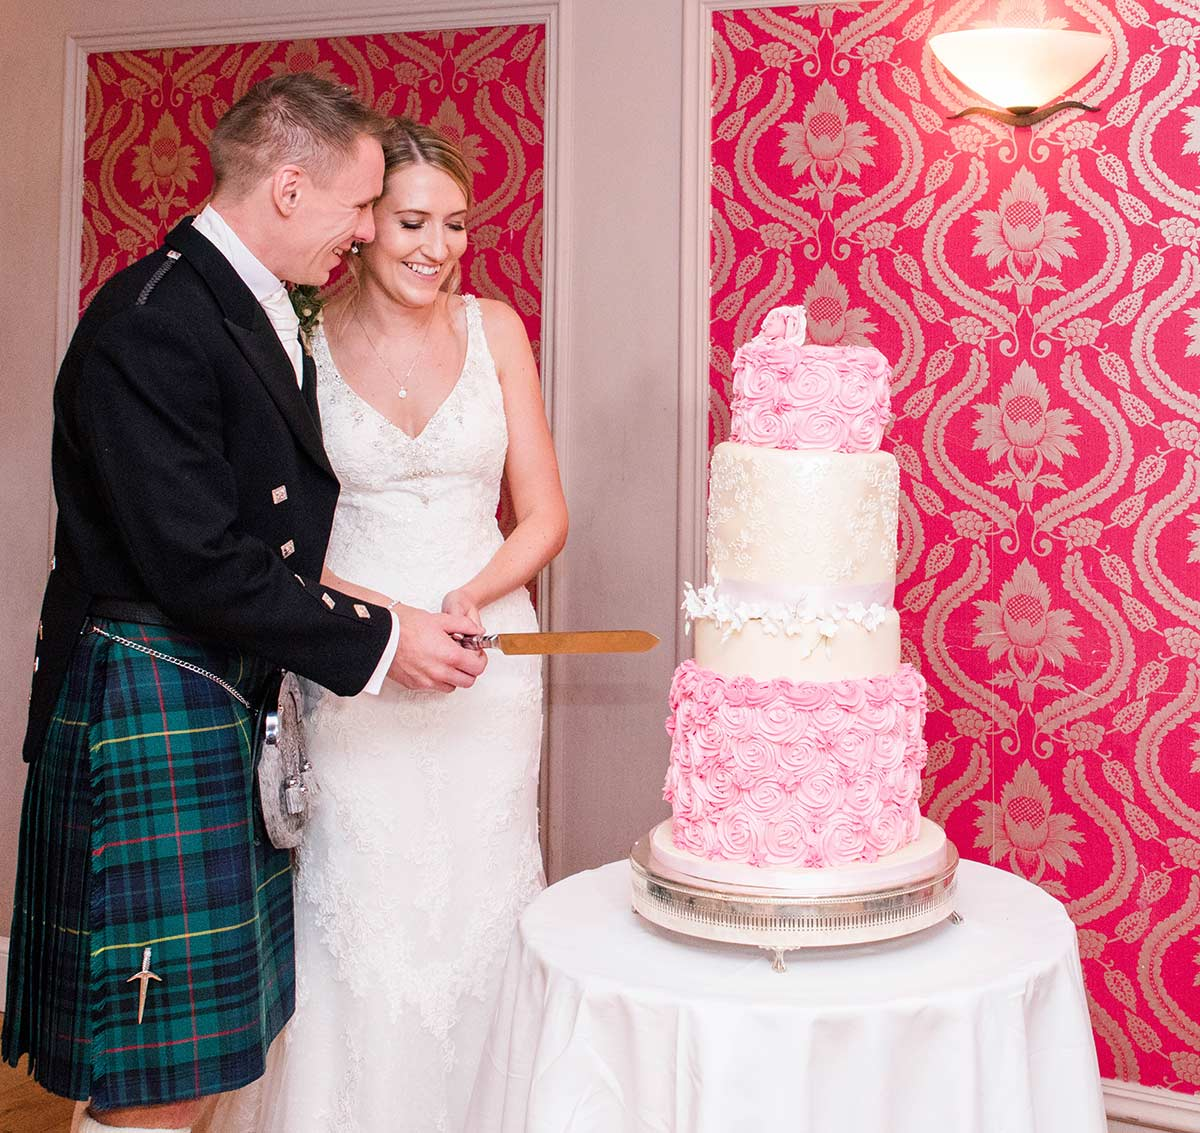 Cutting the wedding cake, how long does a wedding photographer stay